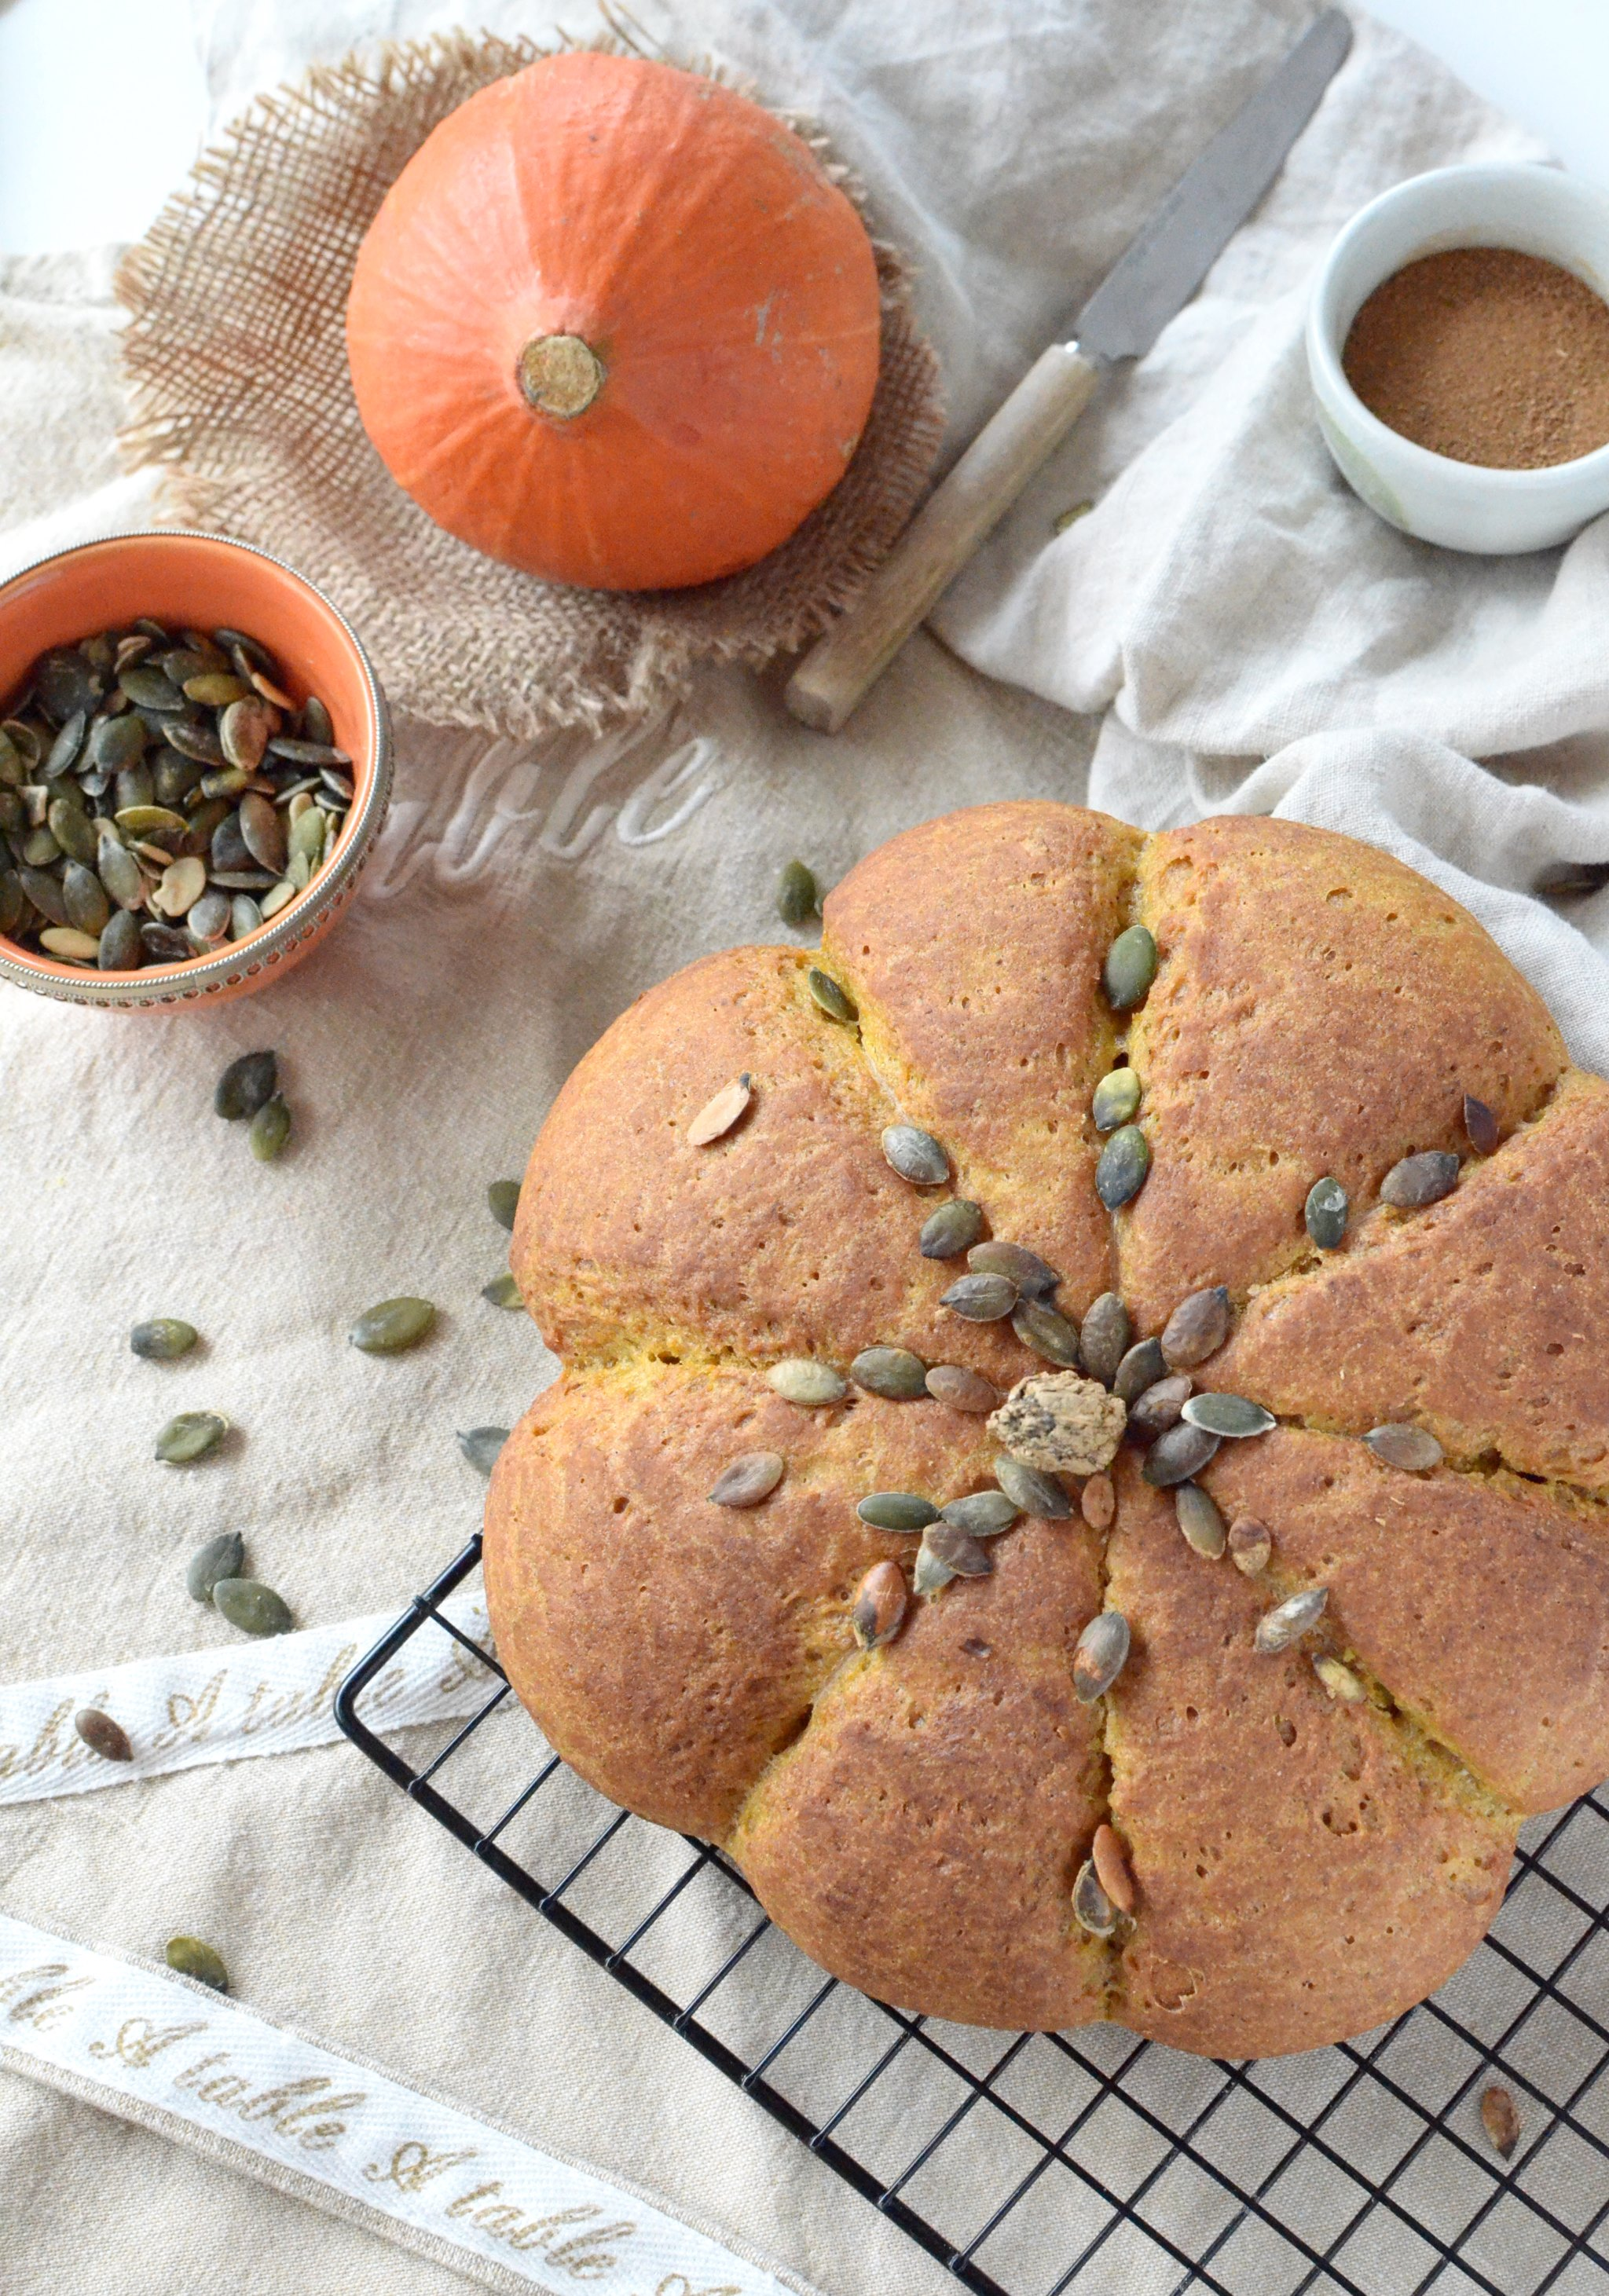 Gluten Free Pumpkin Bread My French Way